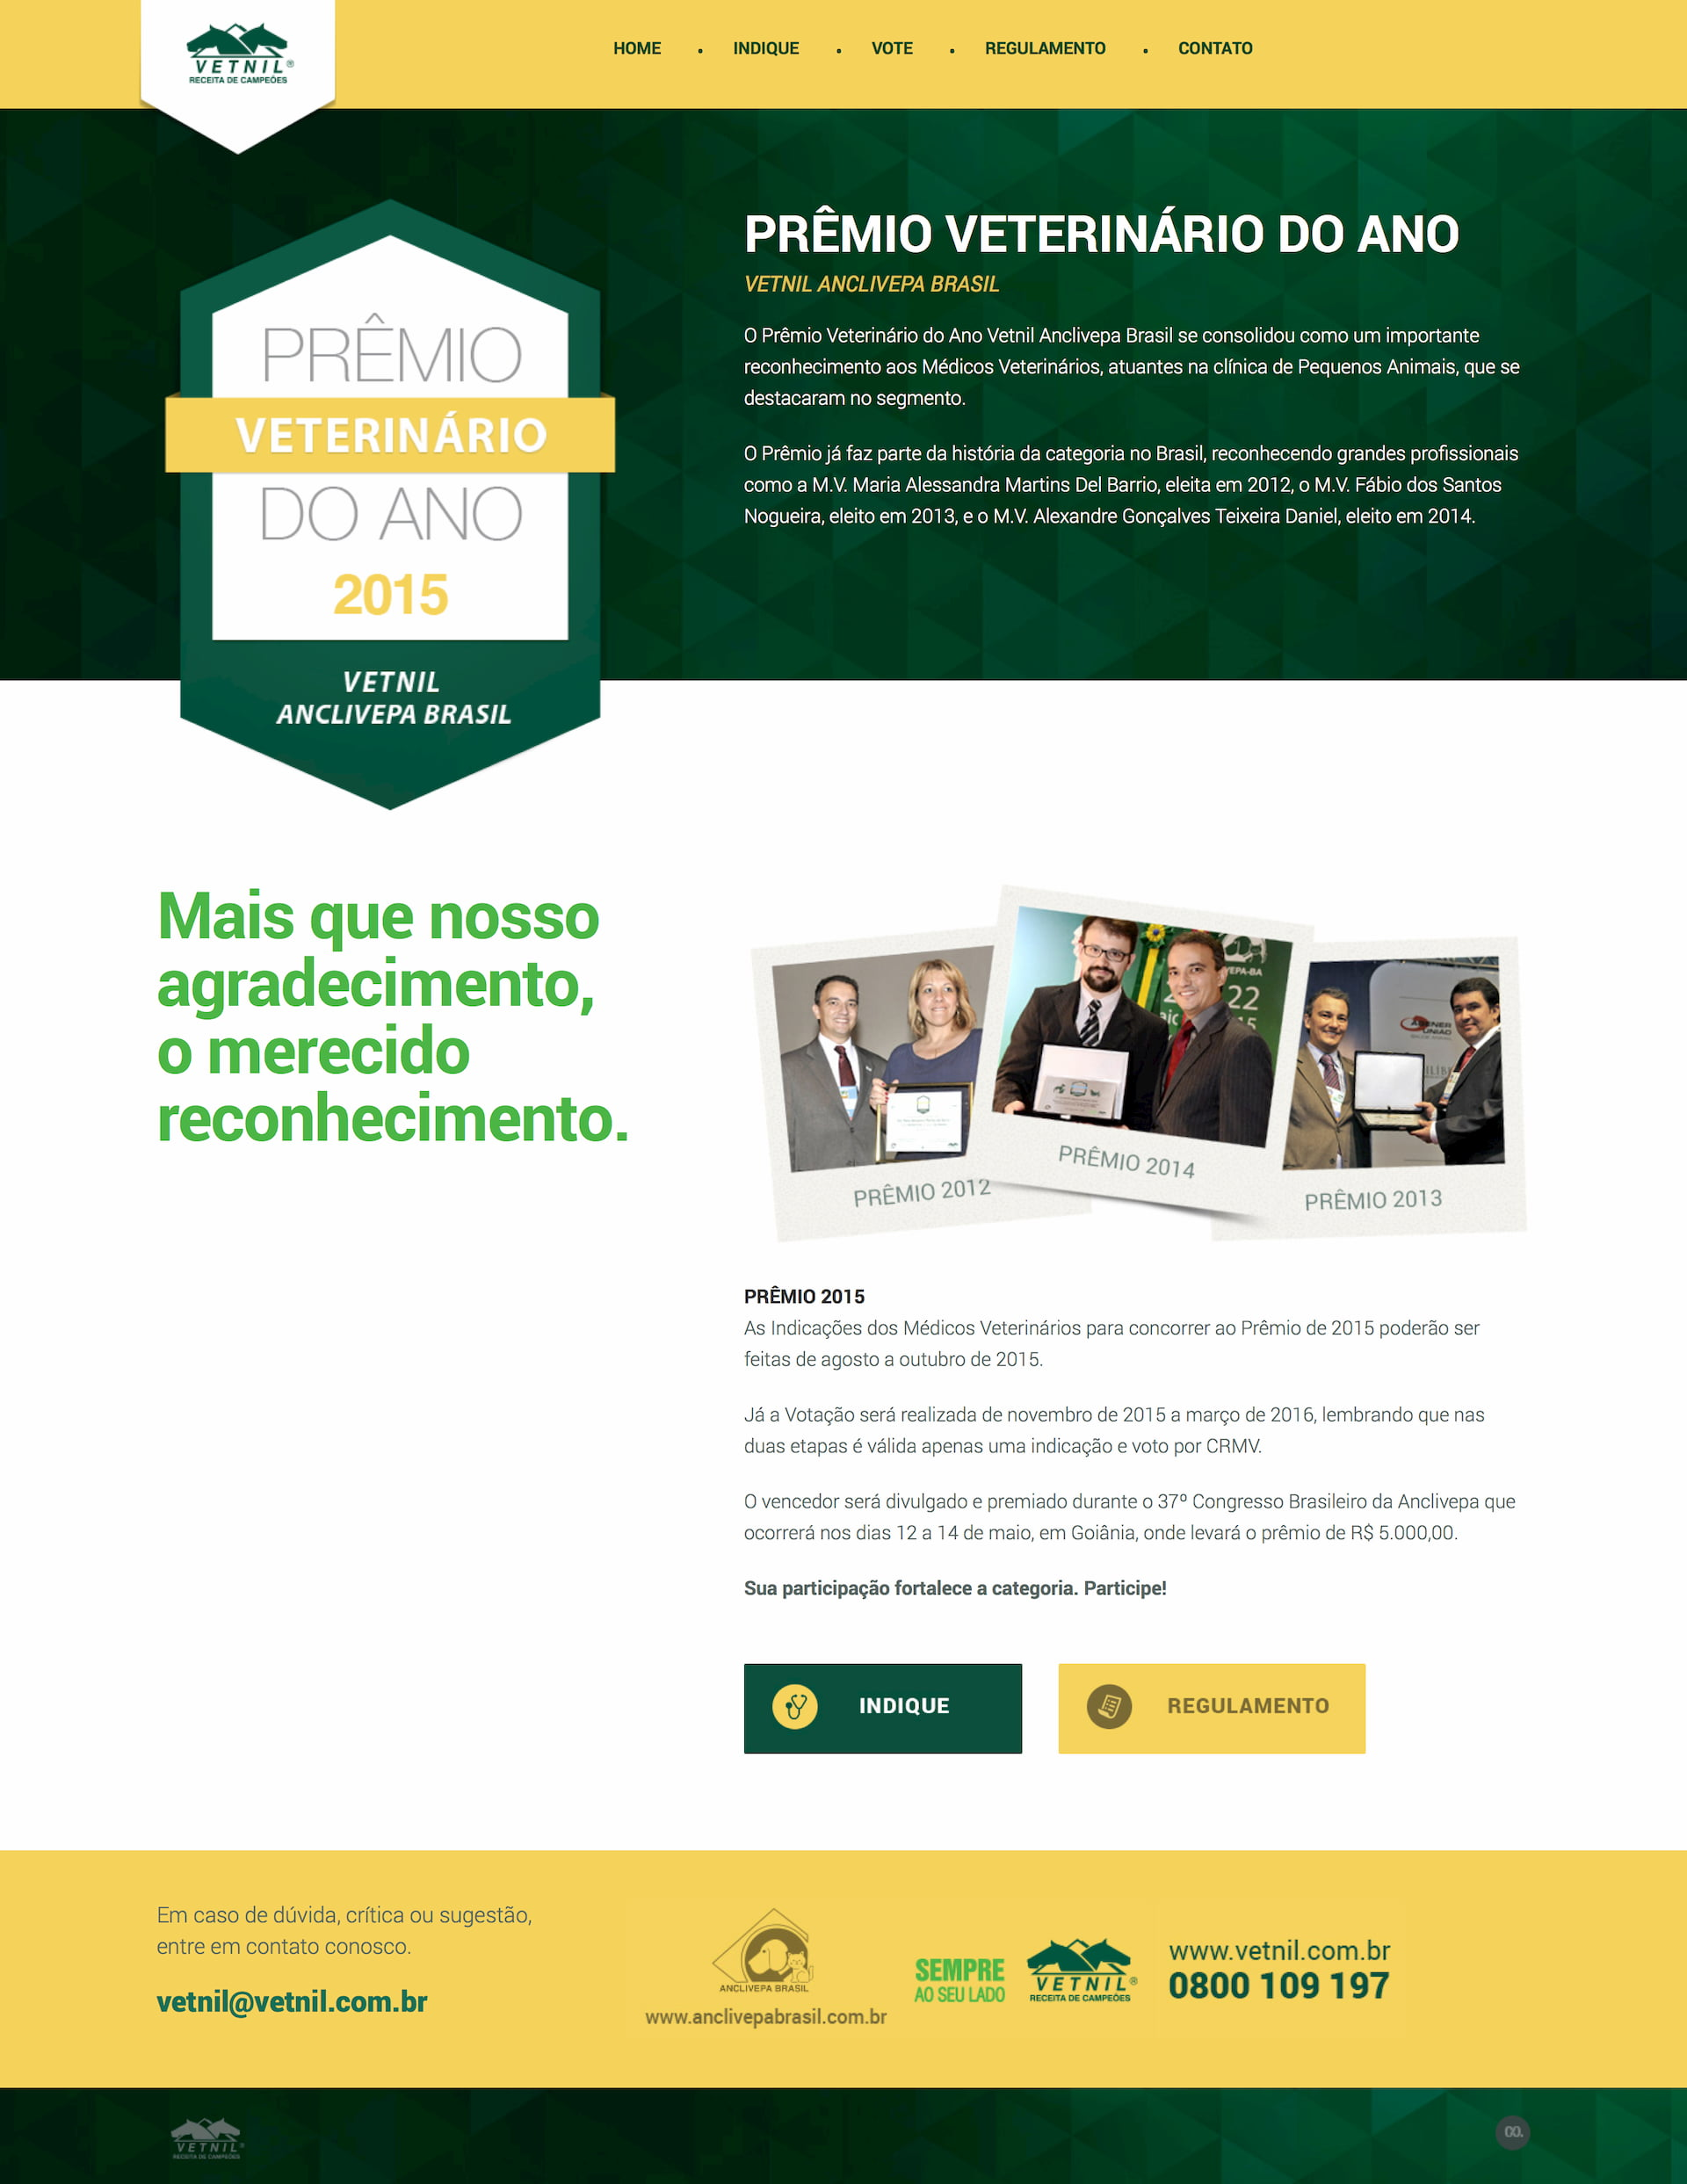 vetnil veterinariodoano - Sites